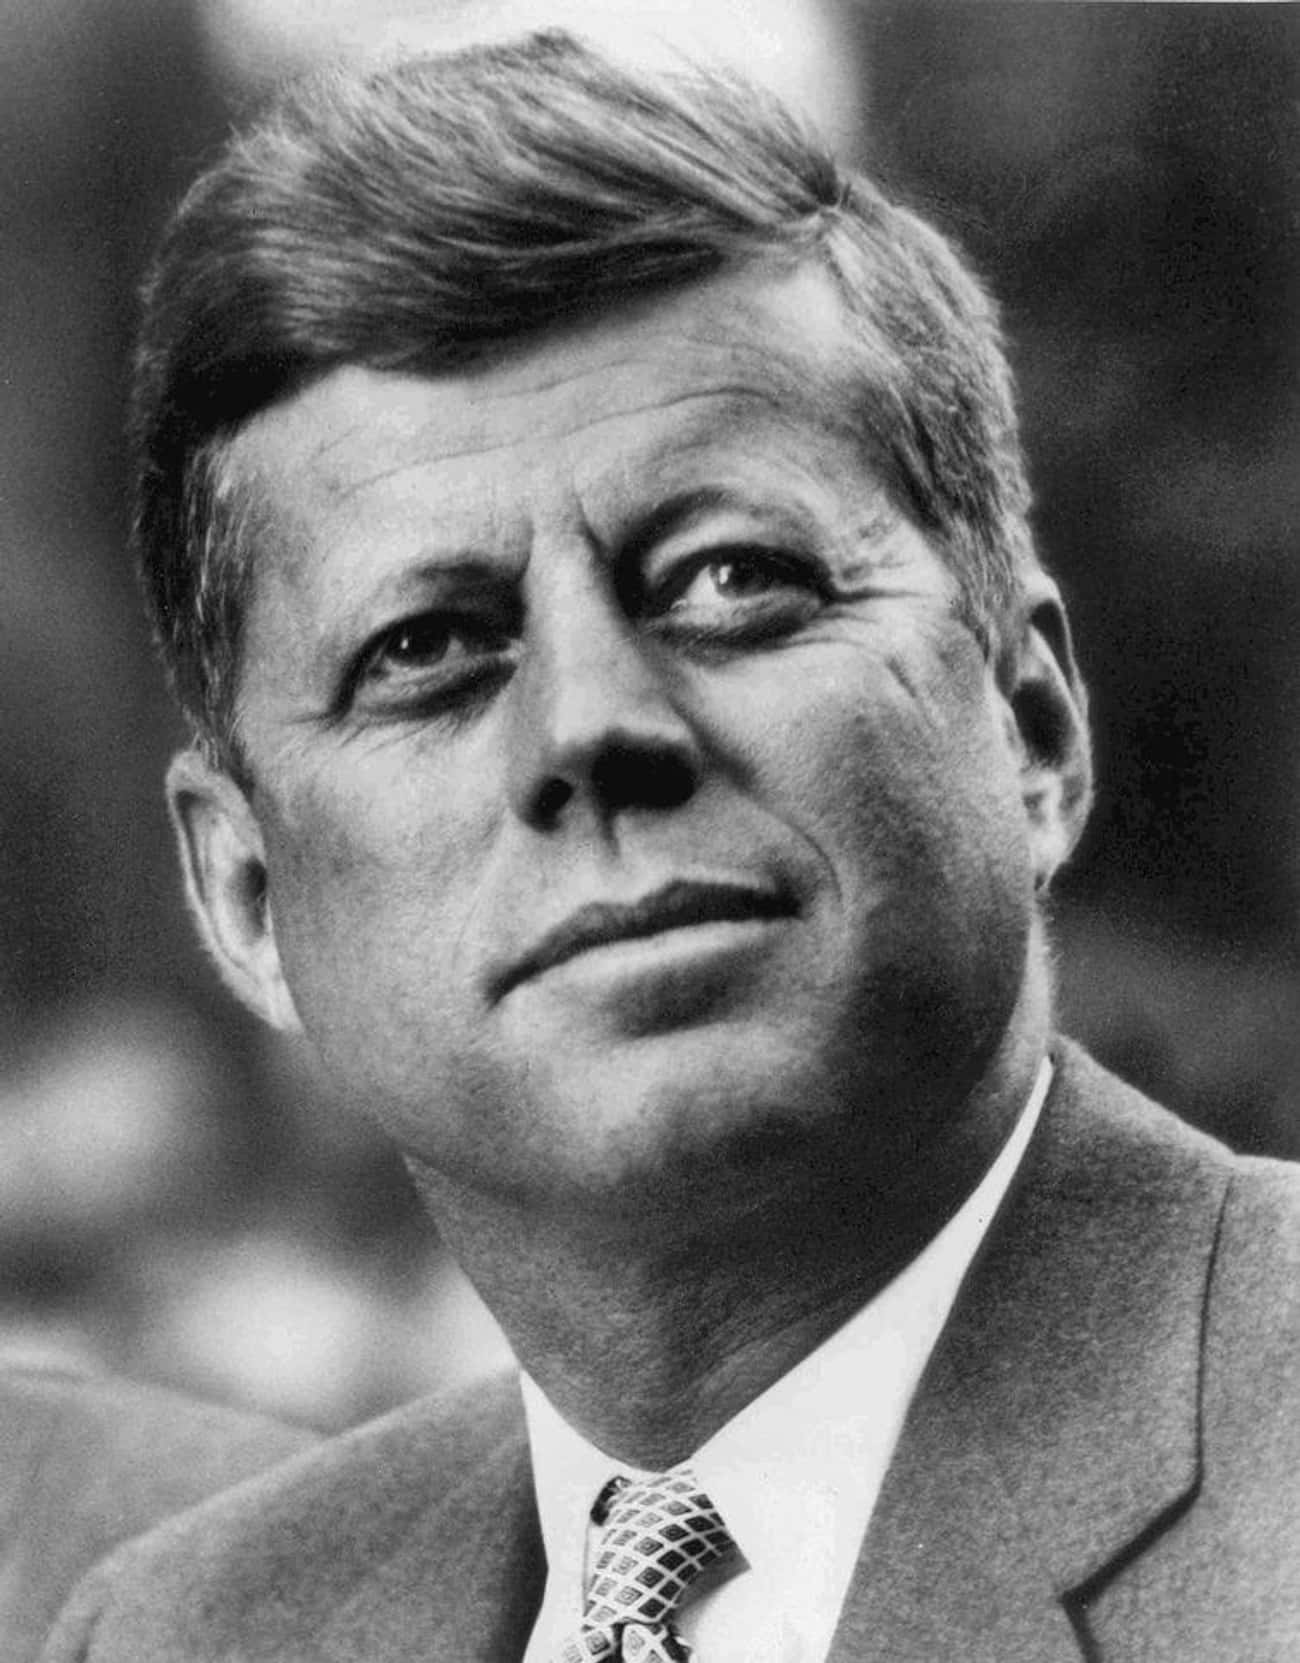 John F. Kennedy's Brain Disappeared Without a Trace